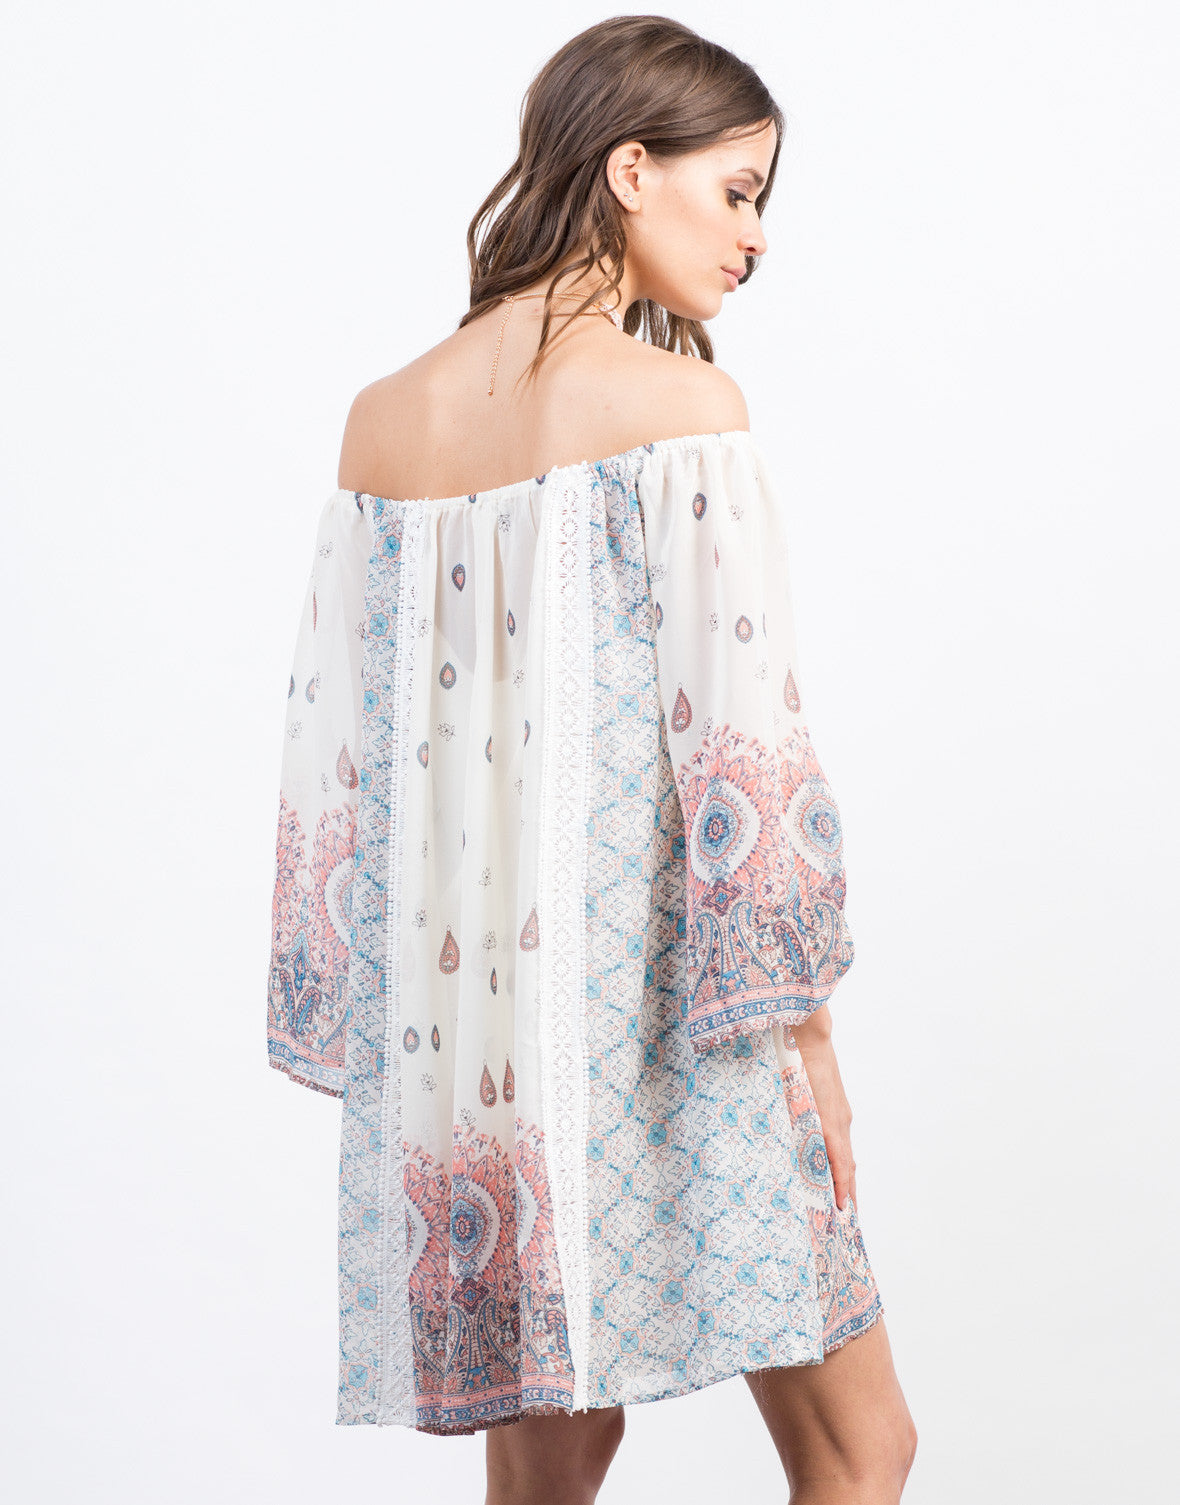 Back View of Off the Shoulder Chiffon Print Dress